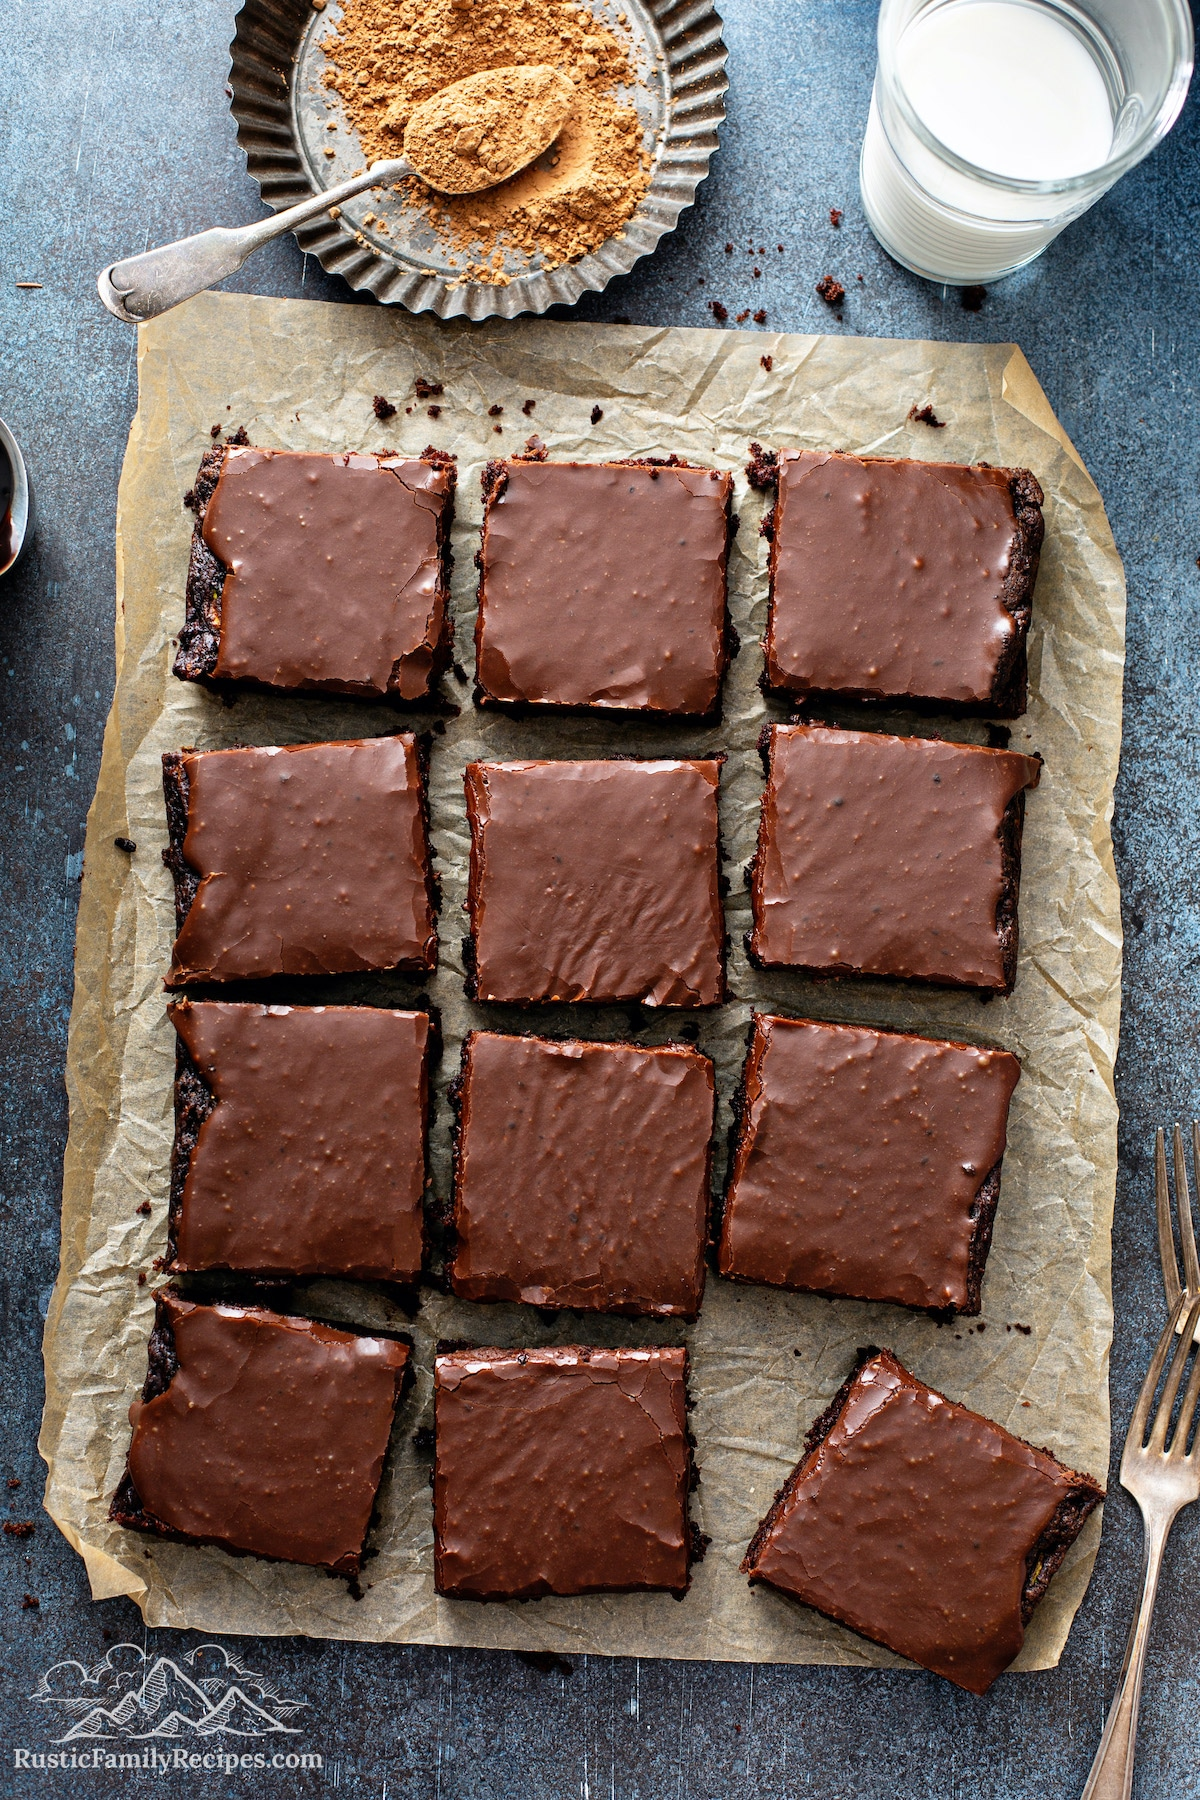 Frosted zucchini brownies on parchment paper with a glass of milk